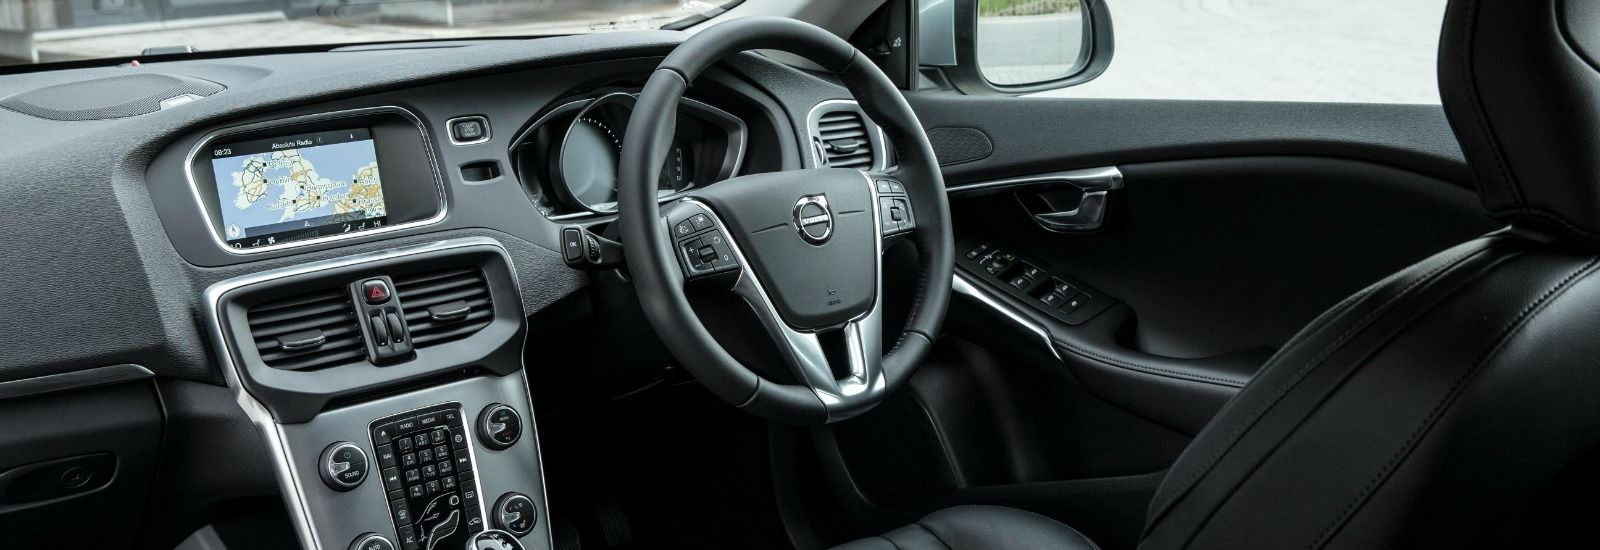 Volvo v40 sizes and dimensions guide carwow for Interior volvo v40